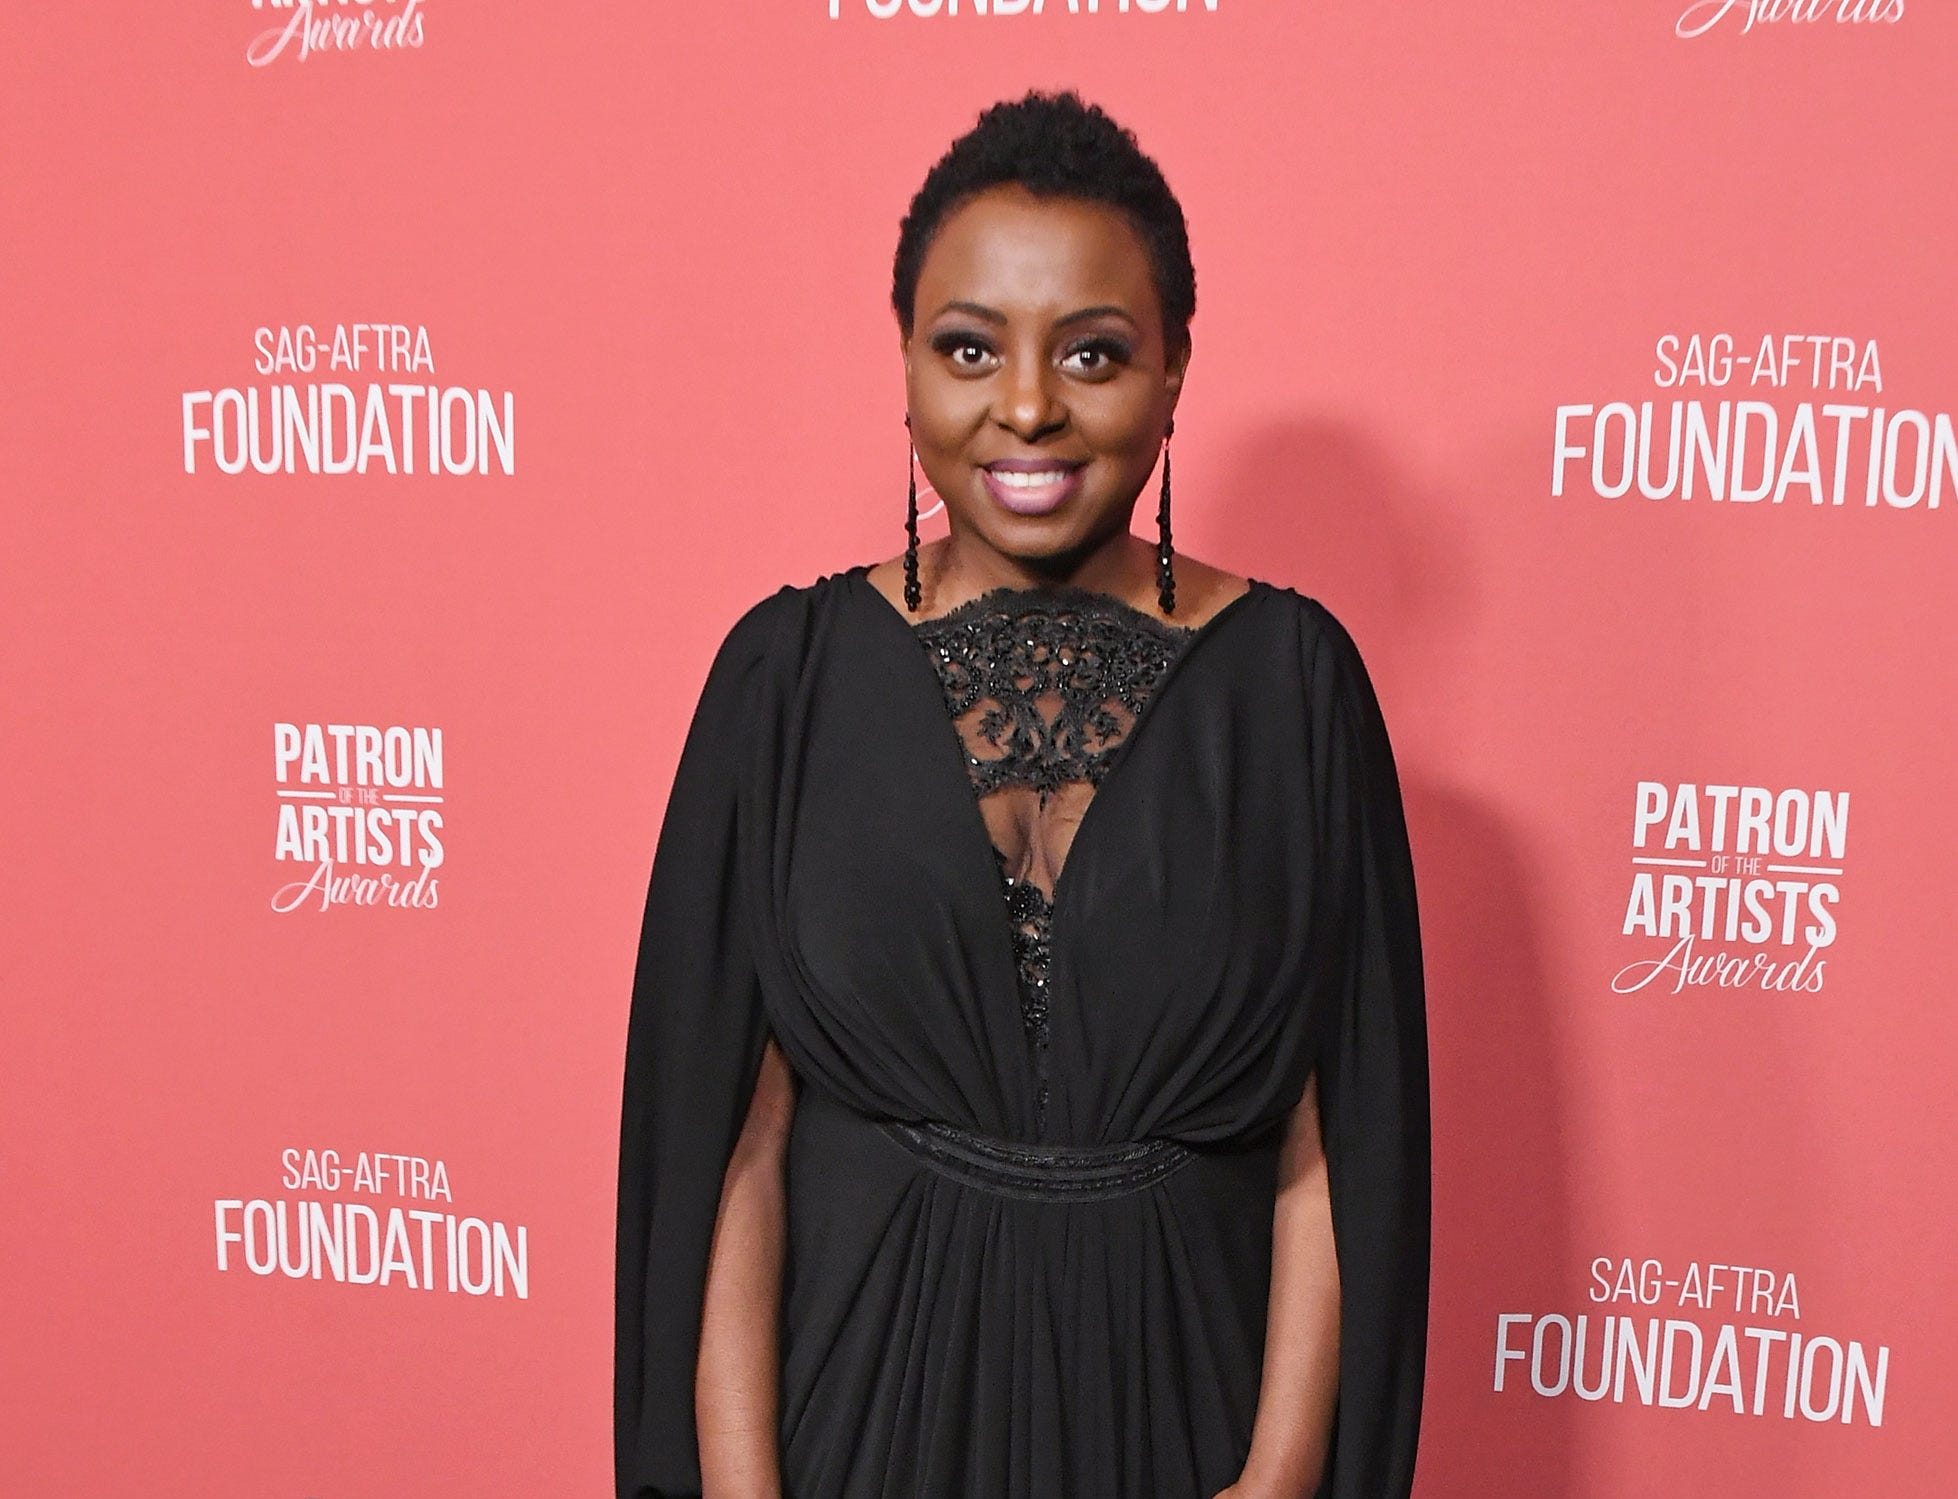 BEVERLY HILLS, CA - NOVEMBER 08:  Ledisi attends SAG-AFTRA Foundation's 3rd Annual Patron Of The Artists Awards at Wallis Annenberg Center for the Performing Arts on November 8, 2018 in Beverly Hills, California.  (Photo by Jon Kopaloff/FilmMagic) ORG XMIT: 775233471 ORIG FILE ID: 1059469140